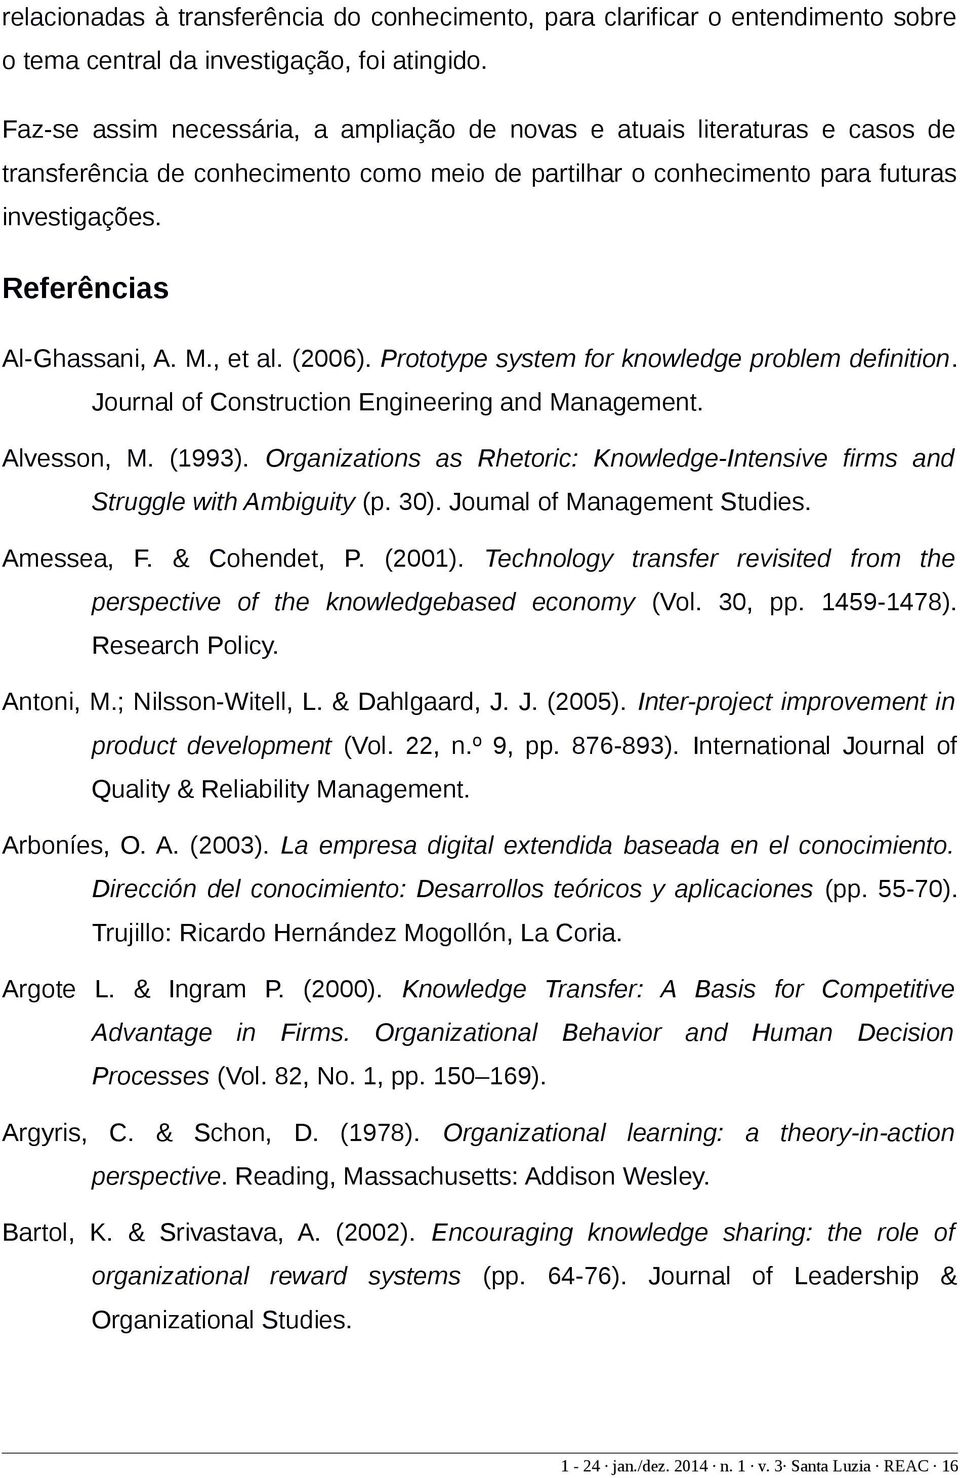 Referências Al-Ghassani, A. M., et al. (2006). Prototype system for knowledge problem definition. Journal of Construction Engineering and Management. Alvesson, M. (1993).